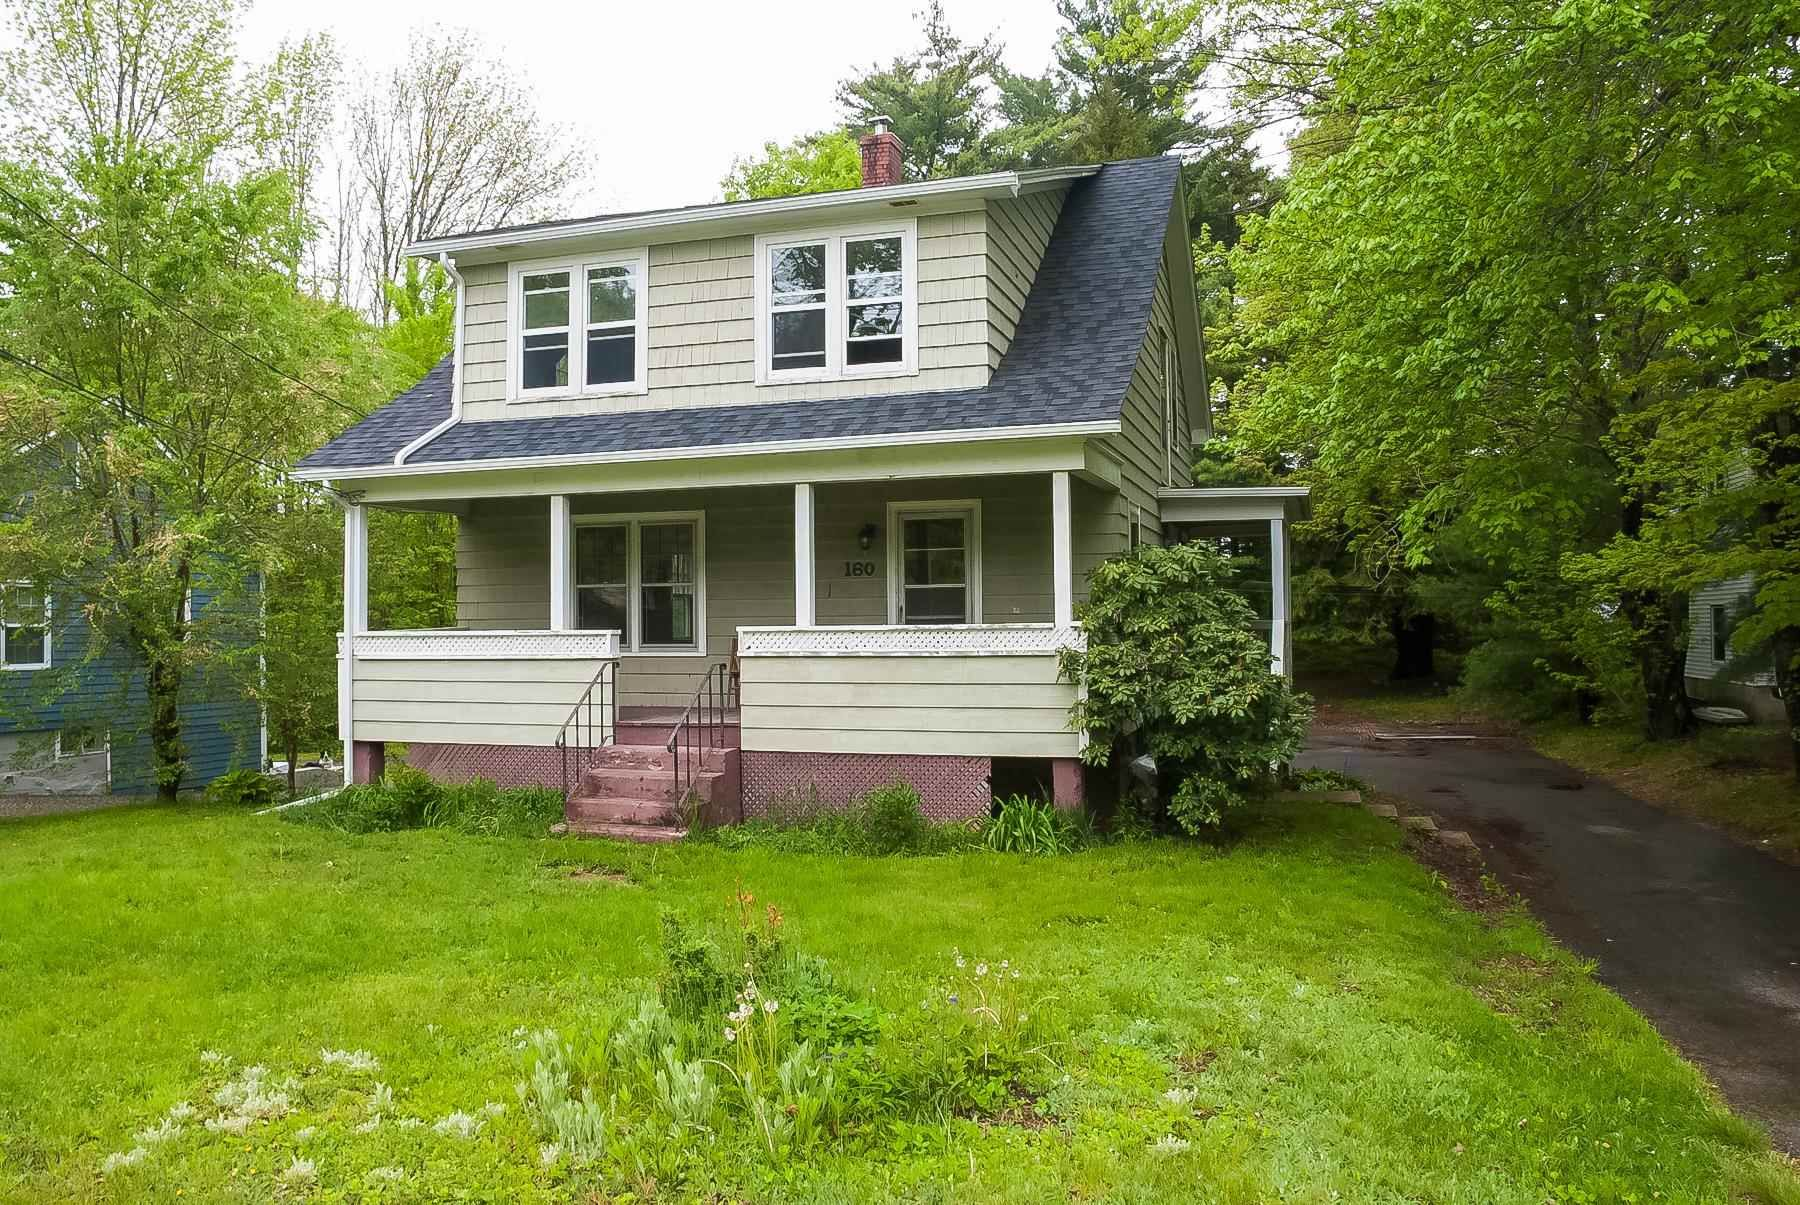 Main Photo: 160 High Street in Bridgewater: 405-Lunenburg County Residential for sale (South Shore)  : MLS®# 202113634